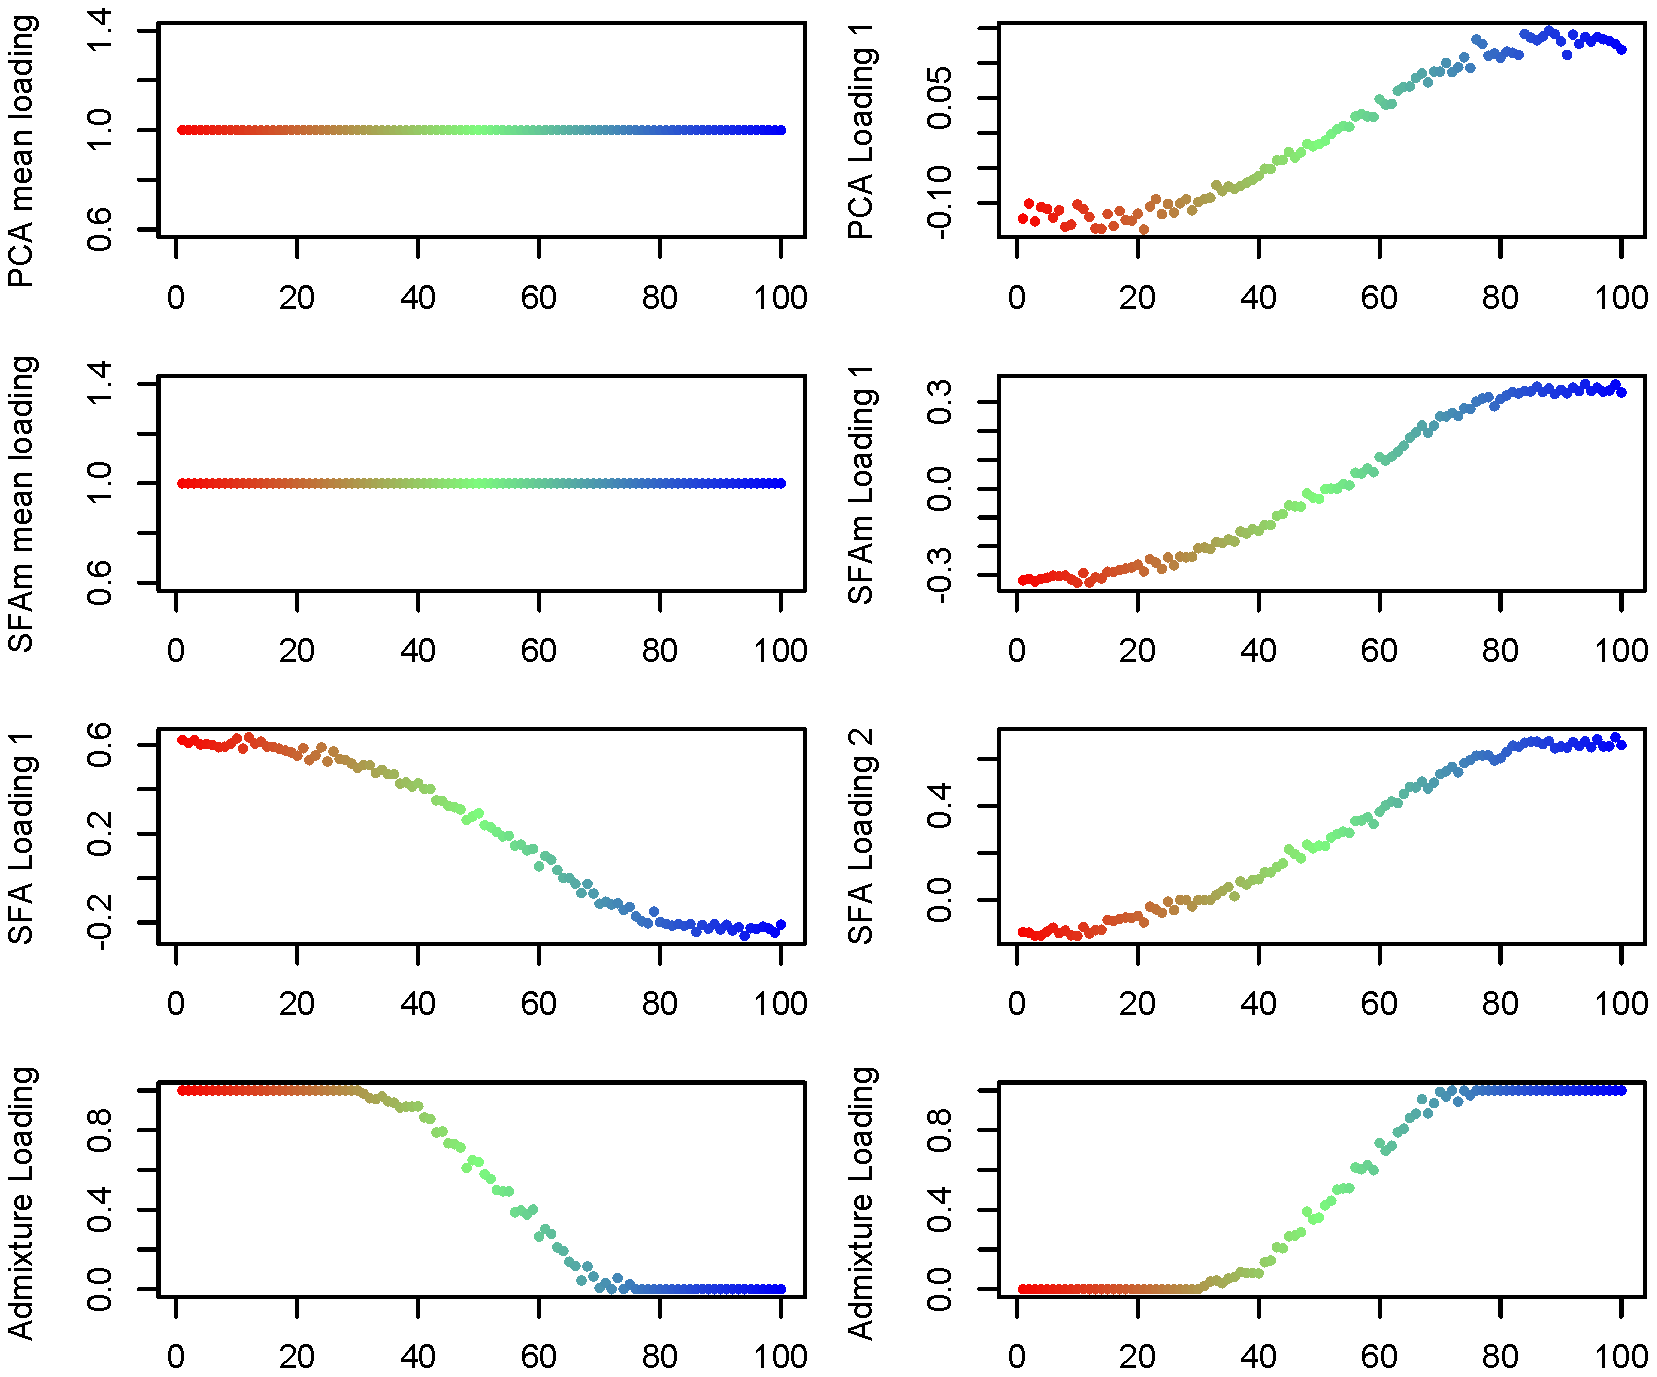 Estimated factor loadings from PCA, SFAm, SFA, and admixture for the 1-D isolation-by-distance simulation.